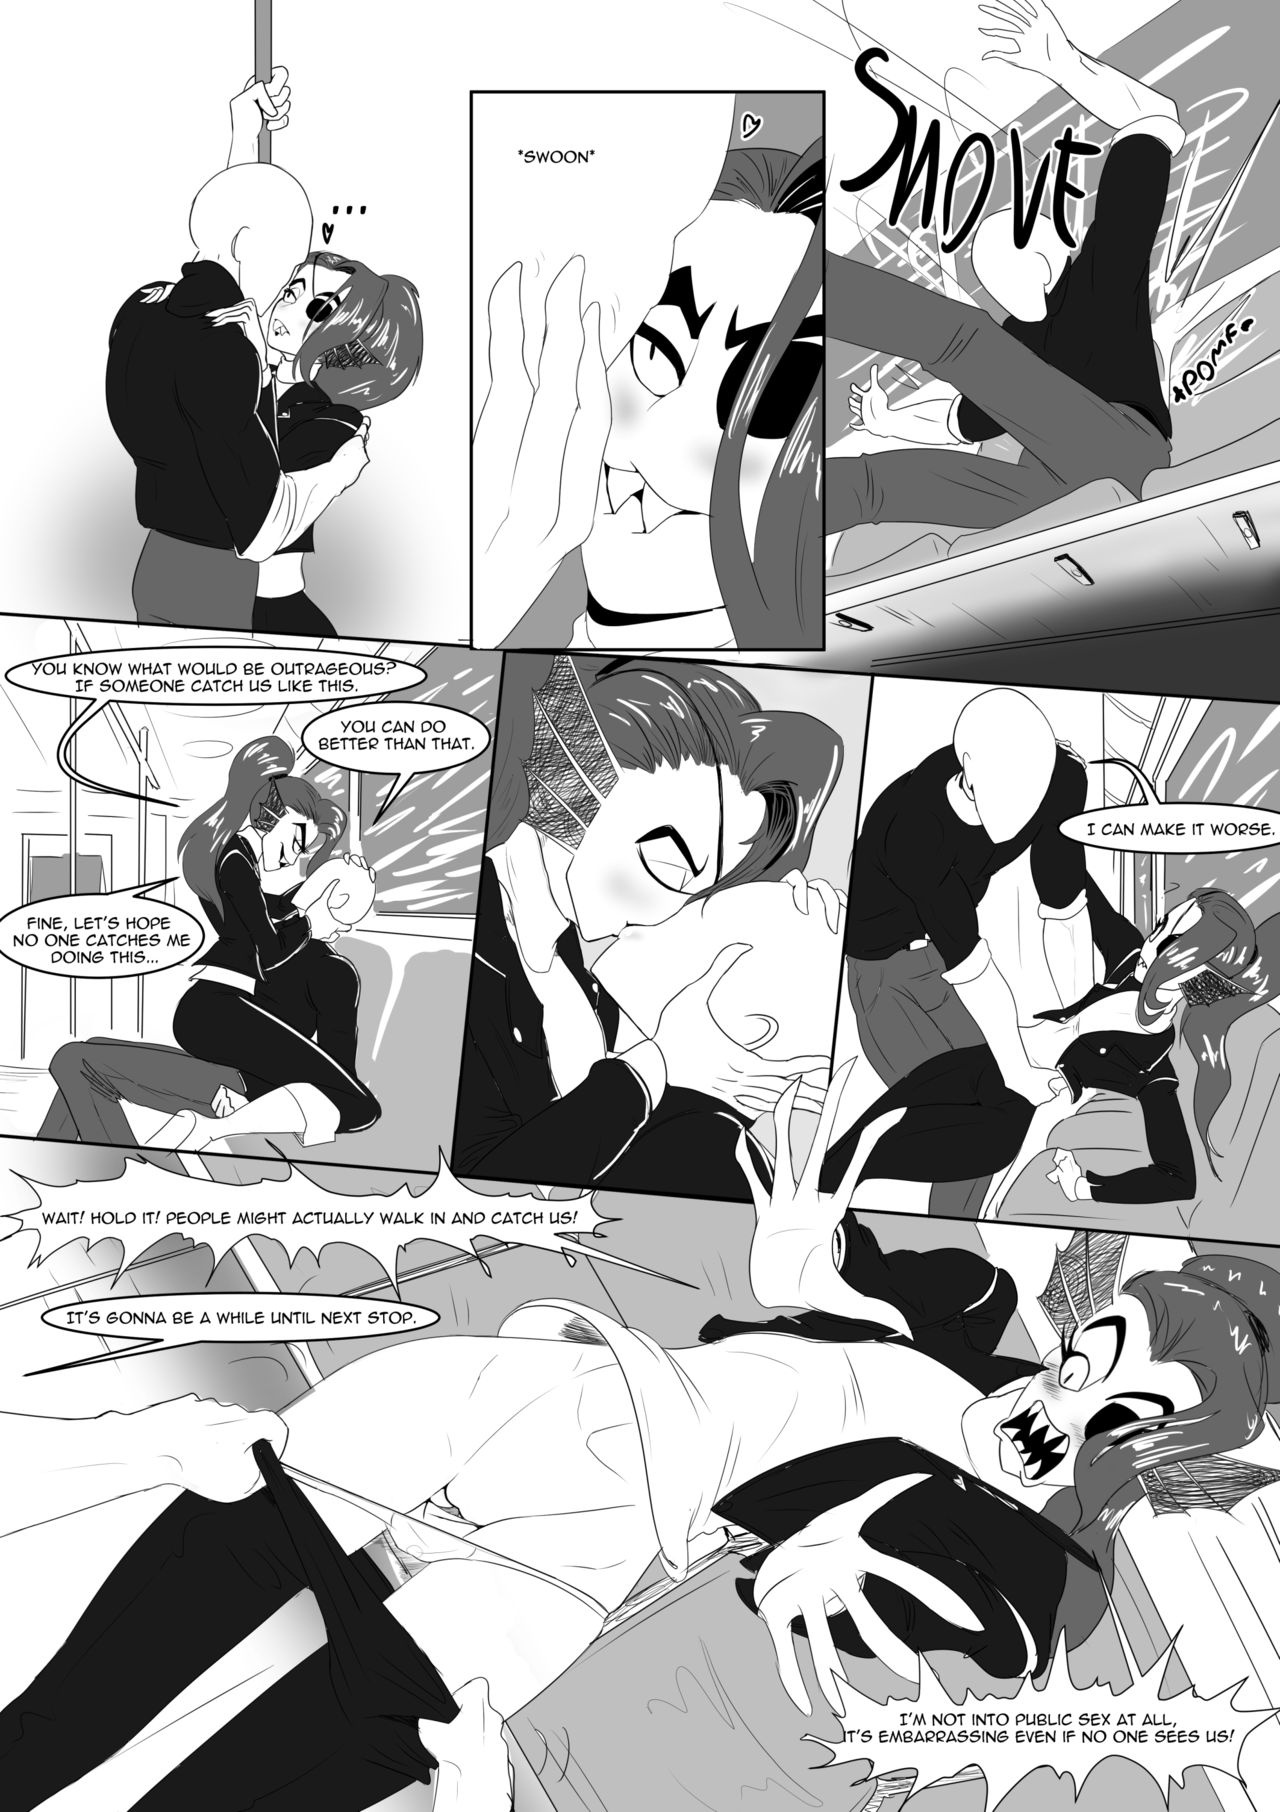 Spear of Just Us 2 - Battle Against a True Nympho porn comics Oral sex, Anal Sex, Cosplay, Monster Girls, Stockings